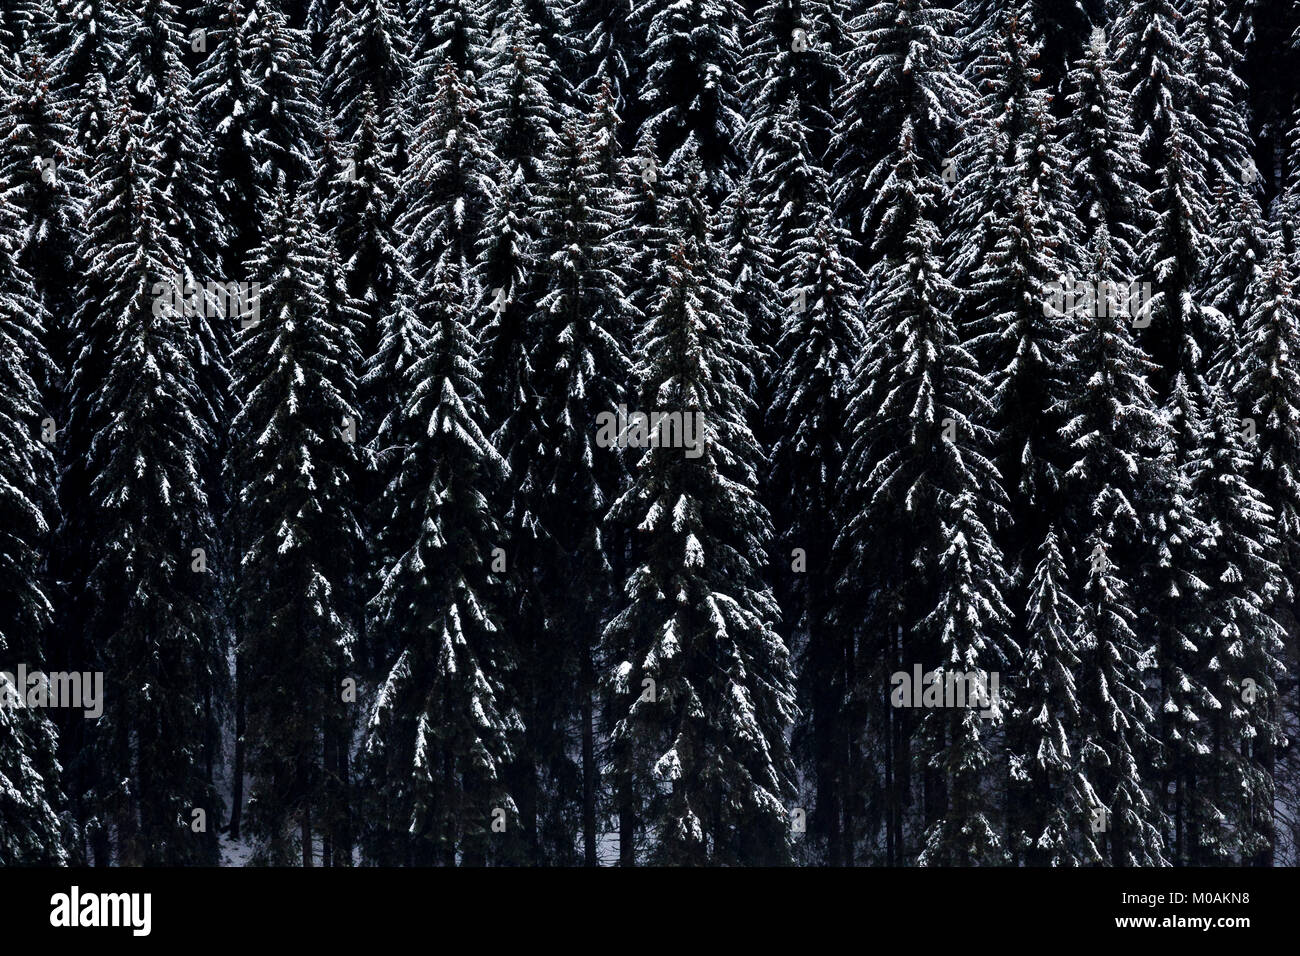 Misty view of snow-covered conifers on the side of the mountain. - Stock Image